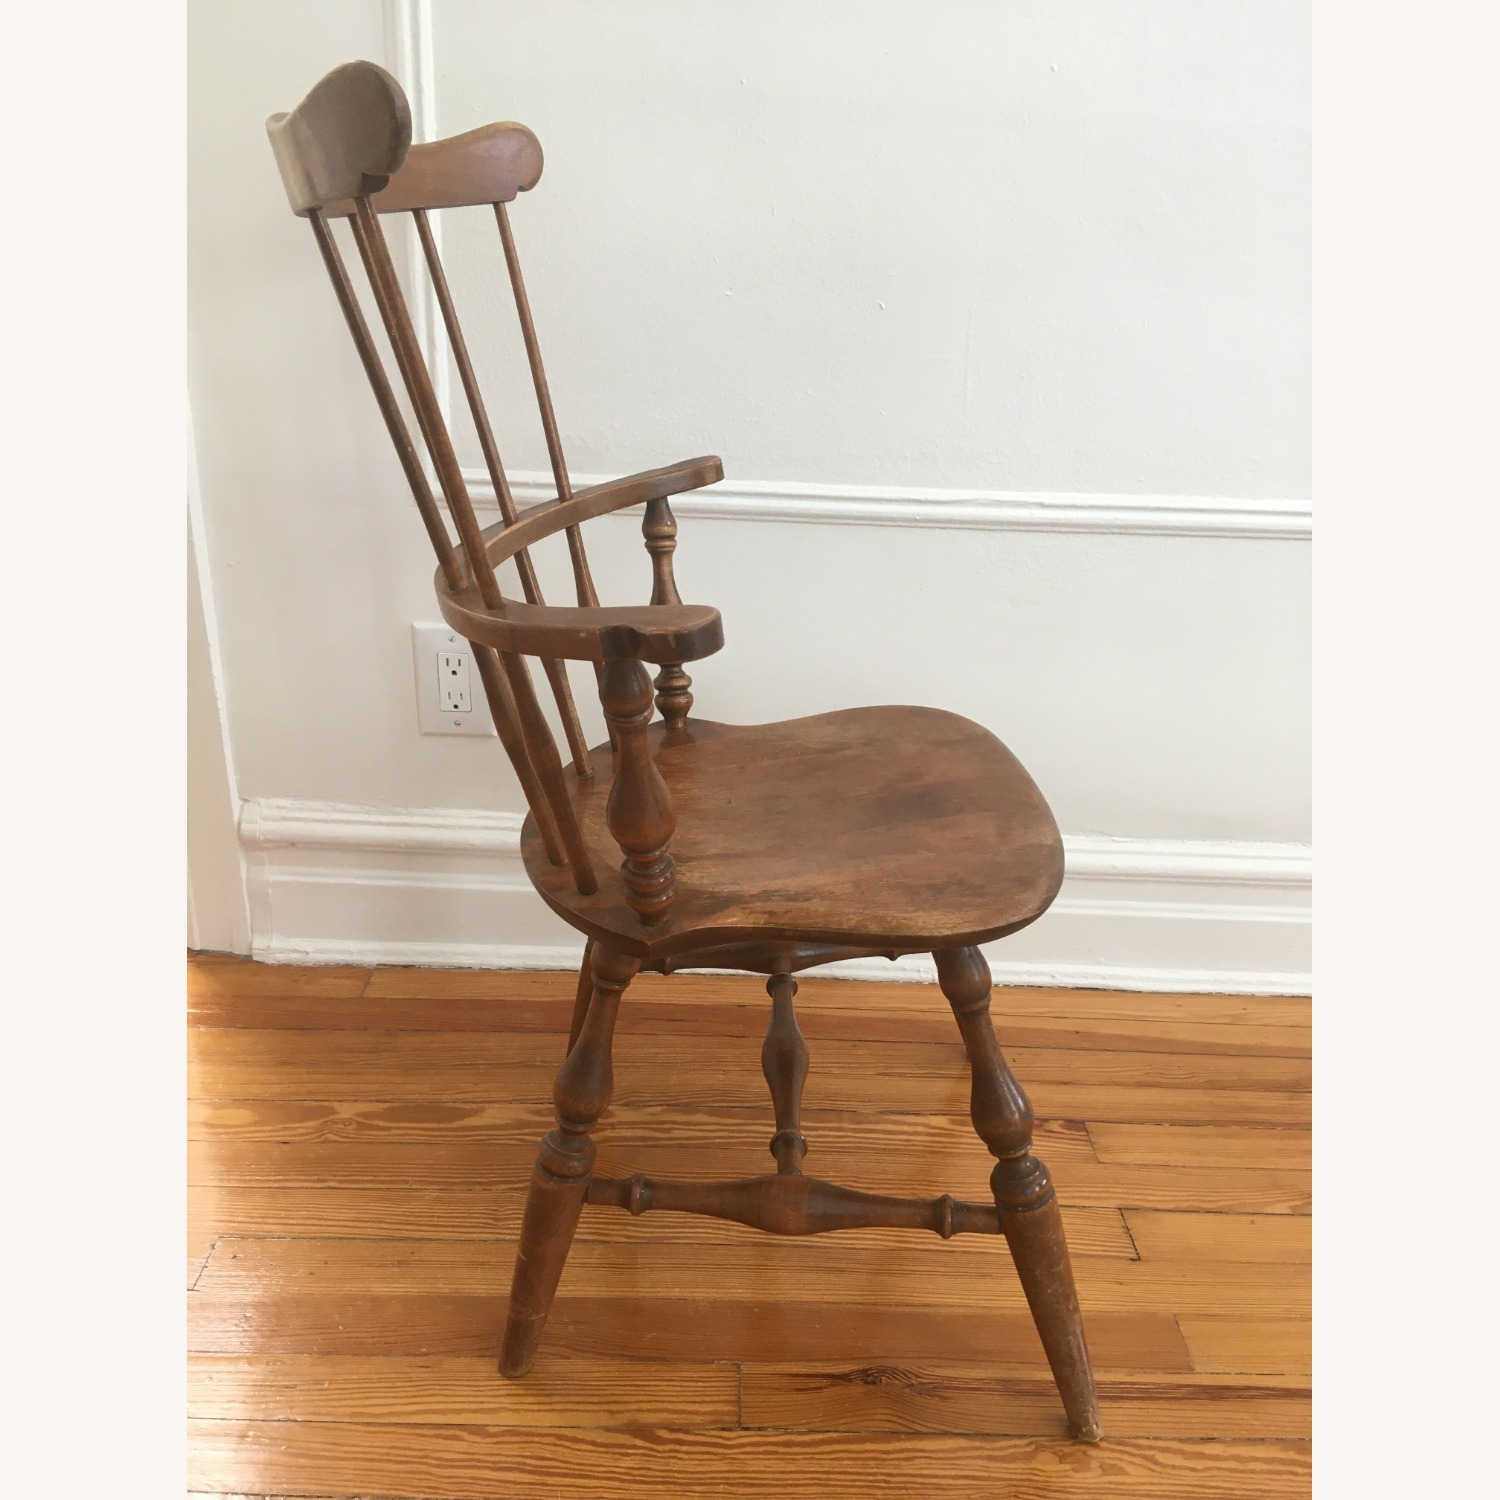 Ethan Allen Tall Comb Back Chair - image-2